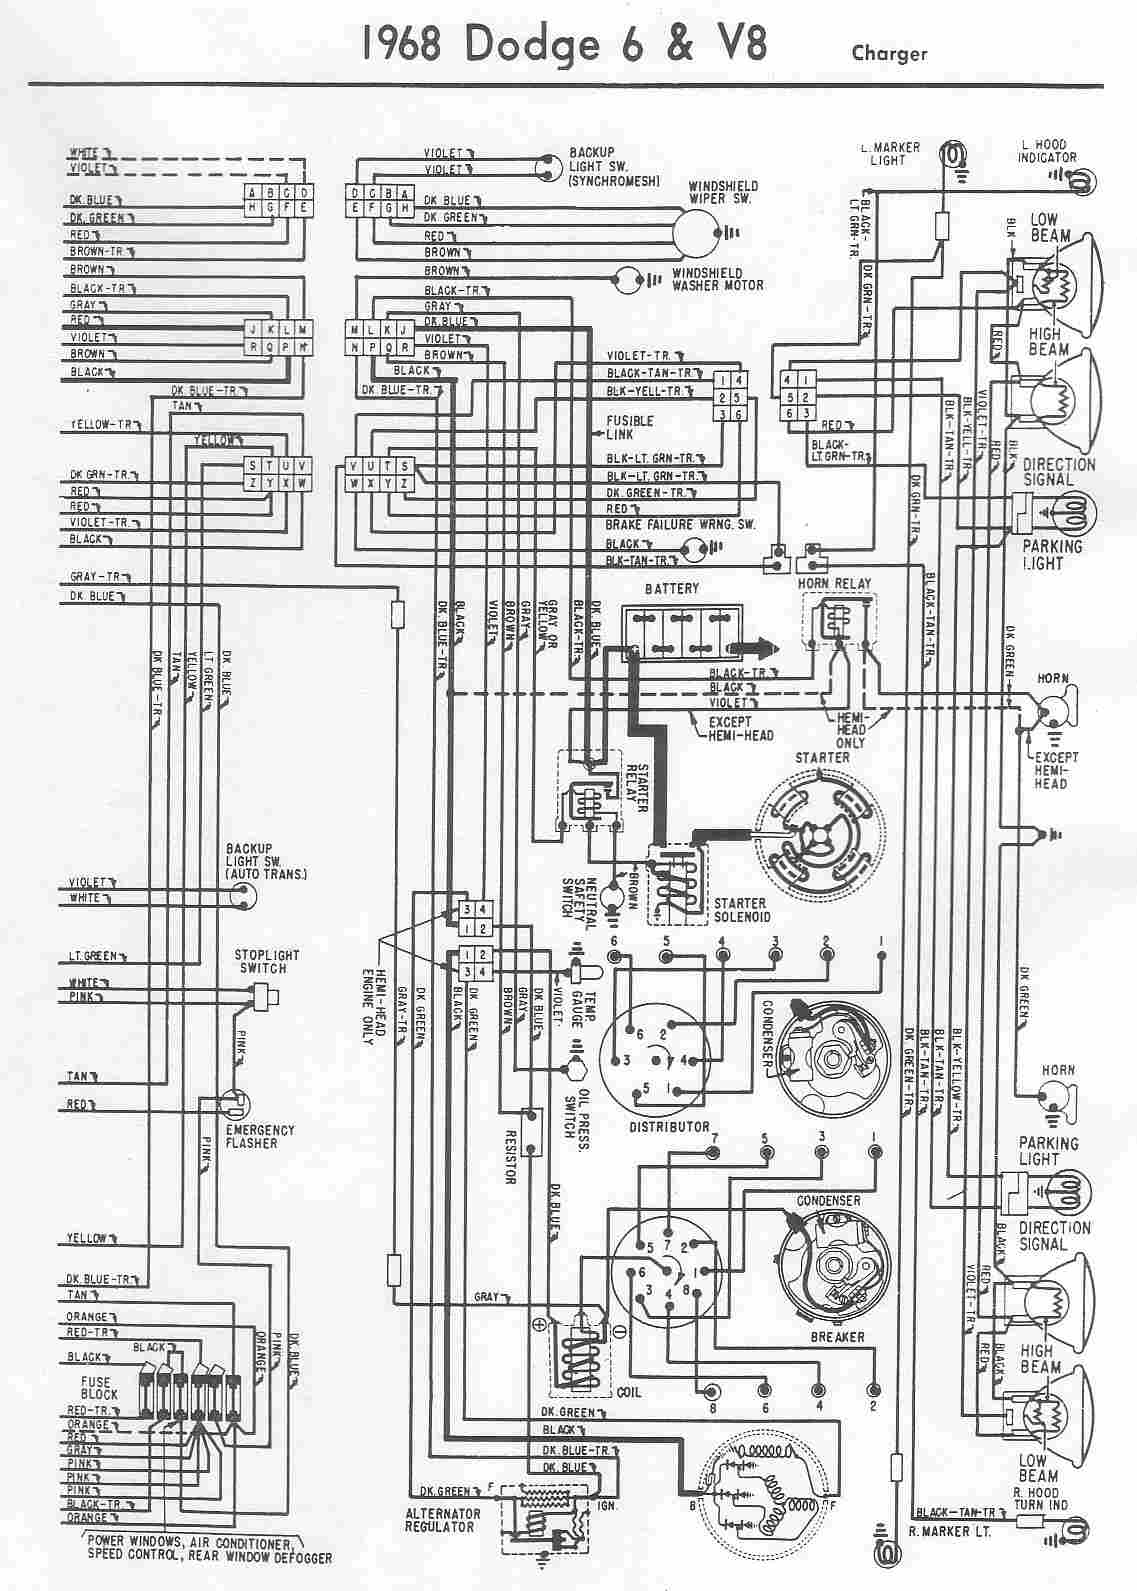 medium resolution of 2013 dodge challenger underhood wiring diagram wiring diagram for you lesco wiring diagram 1970 dodge challenger